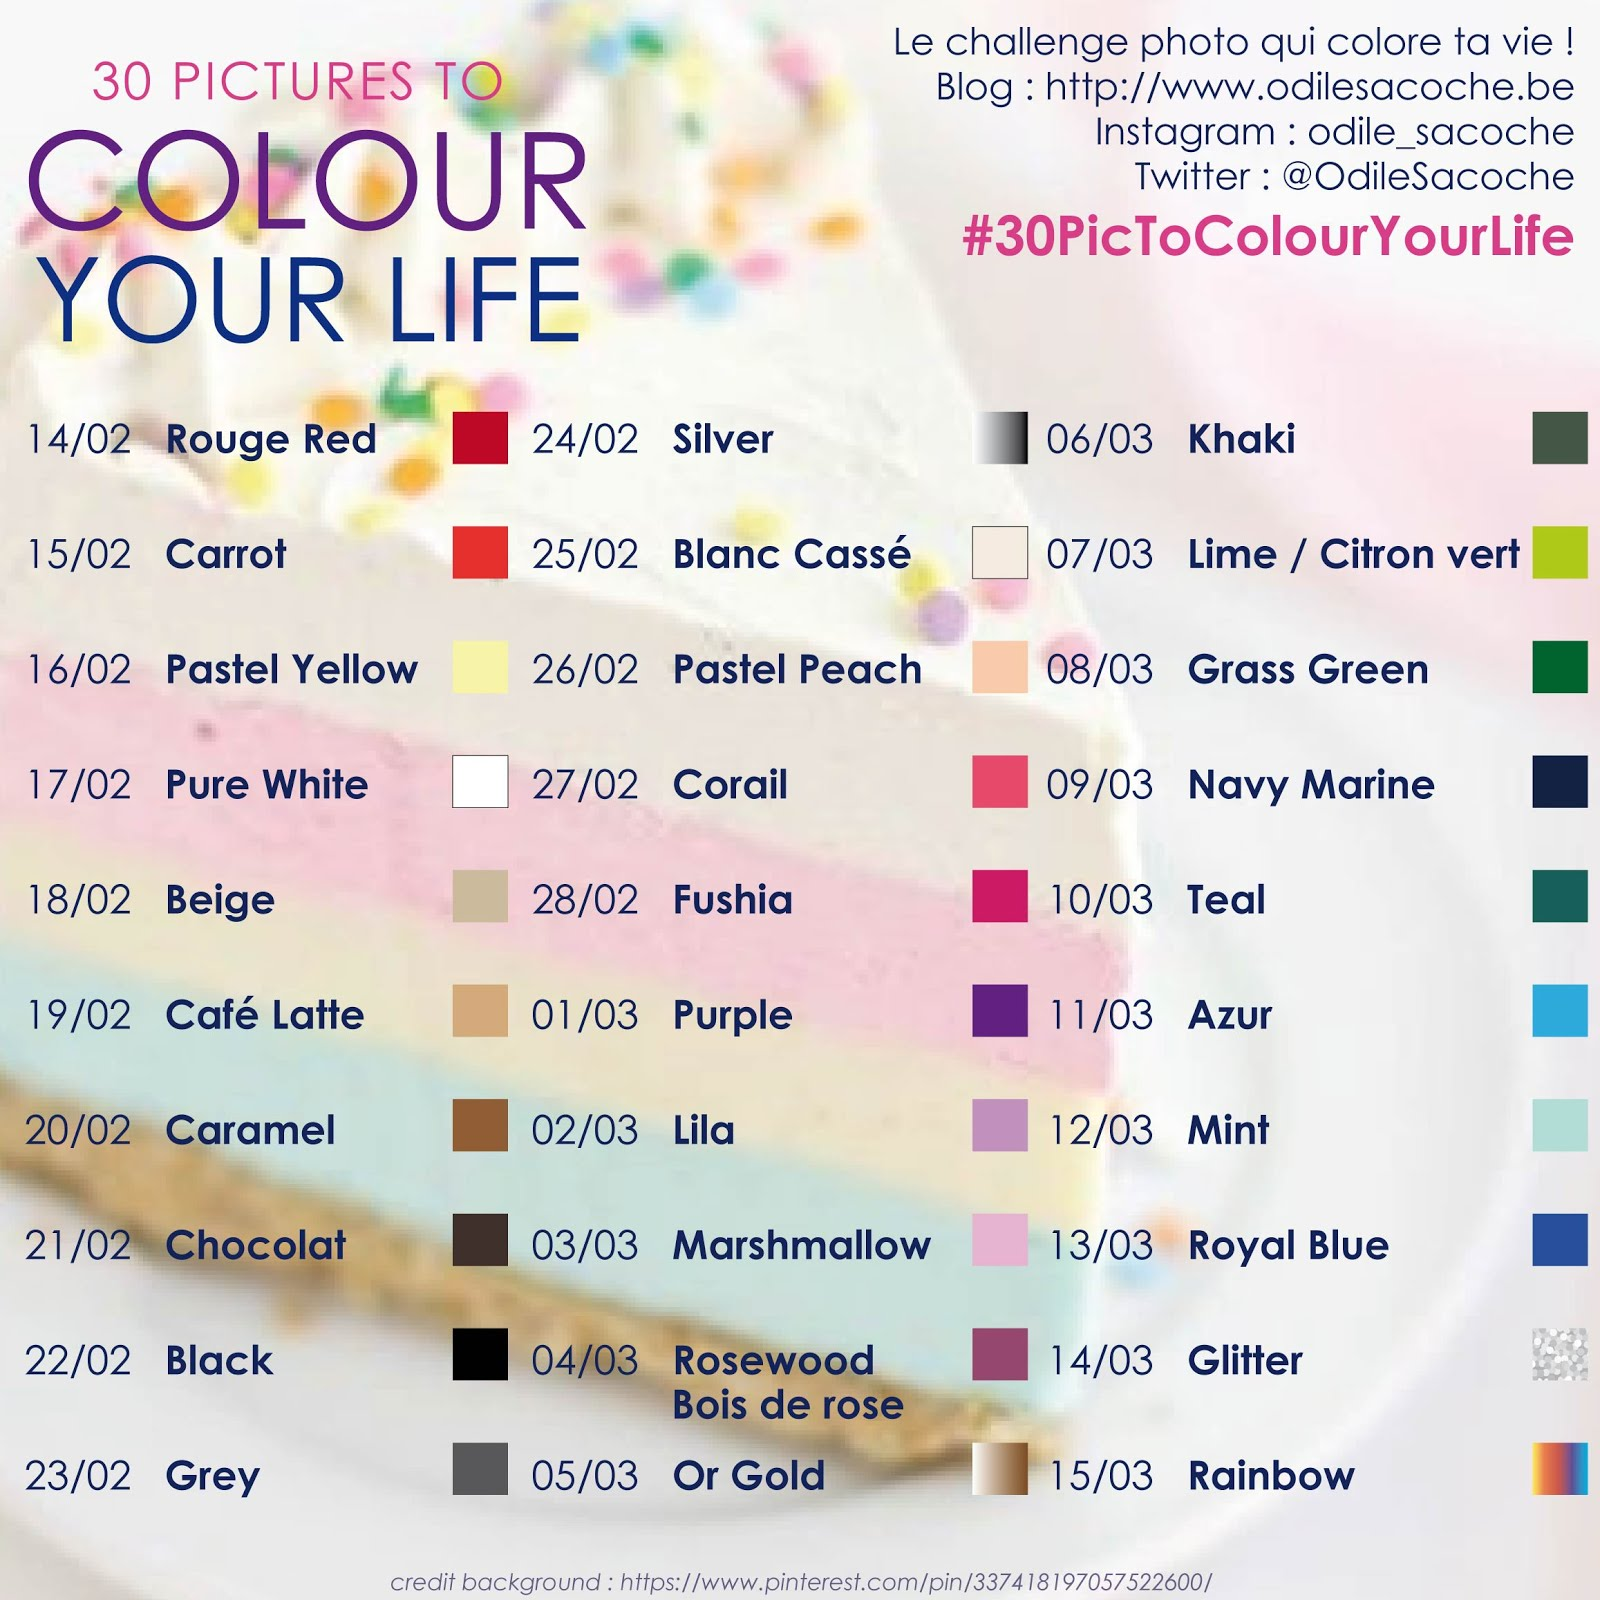 30 Pictures to Colour Your Life